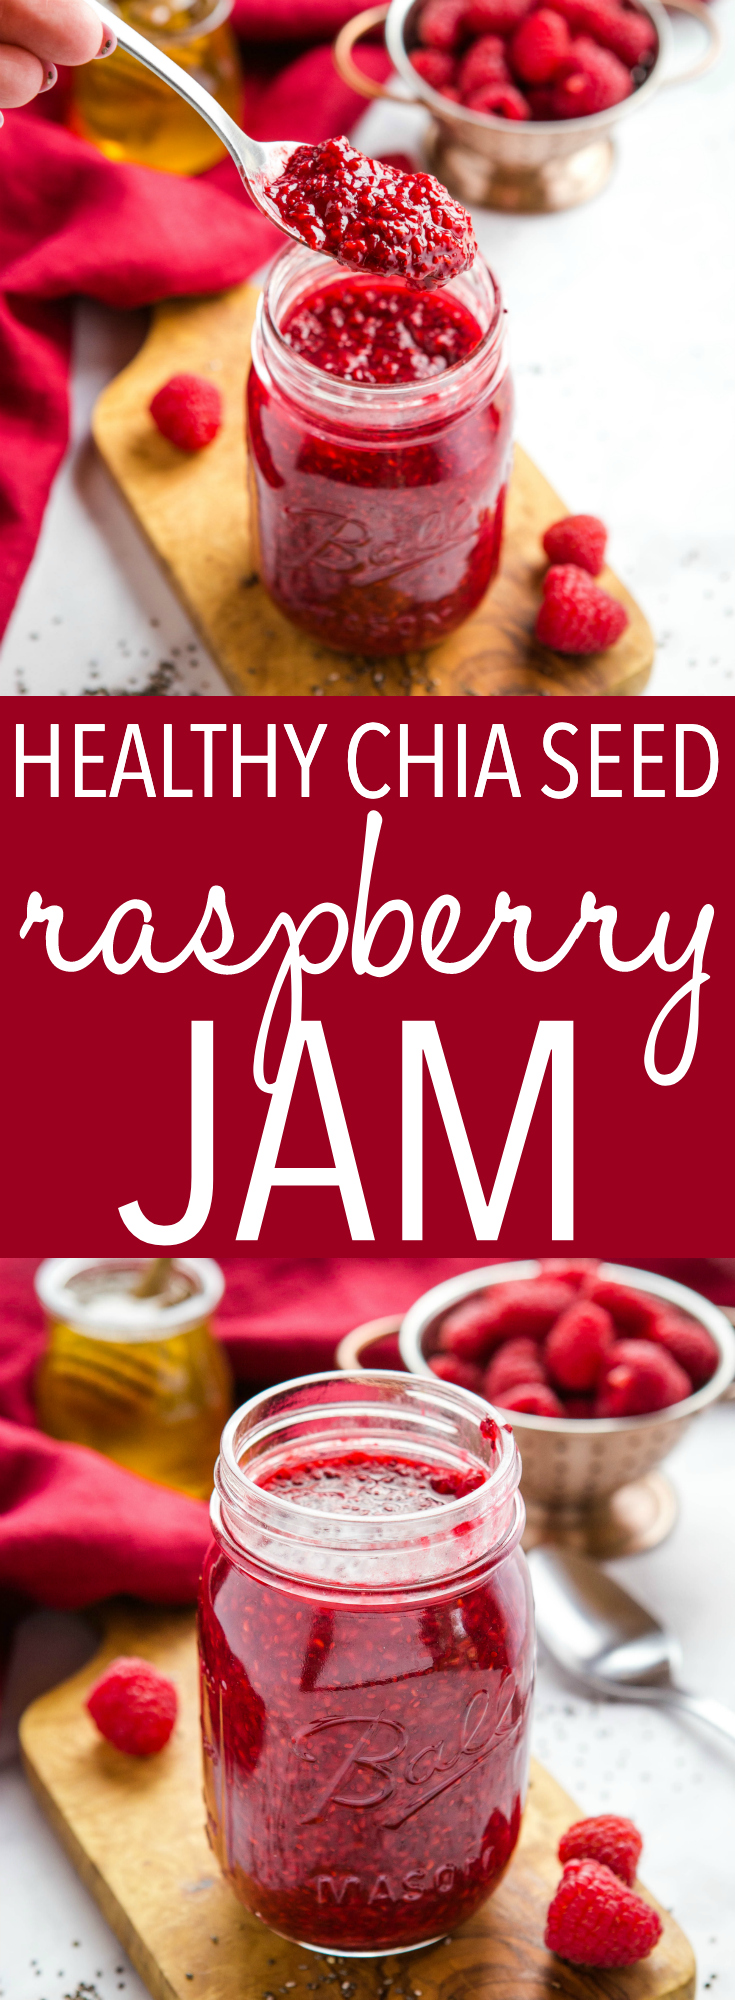 This Easy 3-Ingredient Chia Seed Raspberry Jam is the perfect healthy alternative to conventional jam! It's made with 3 healthy, natural, whole-food ingredients and it's quick and easy to make yourself! Recipe from thebusybaker.ca! #jam #healthy #wholefoods #chiaseeds #health #refinedsugarfree #diabeticrecipe #fruit #homemade #homesteading via @busybakerblog